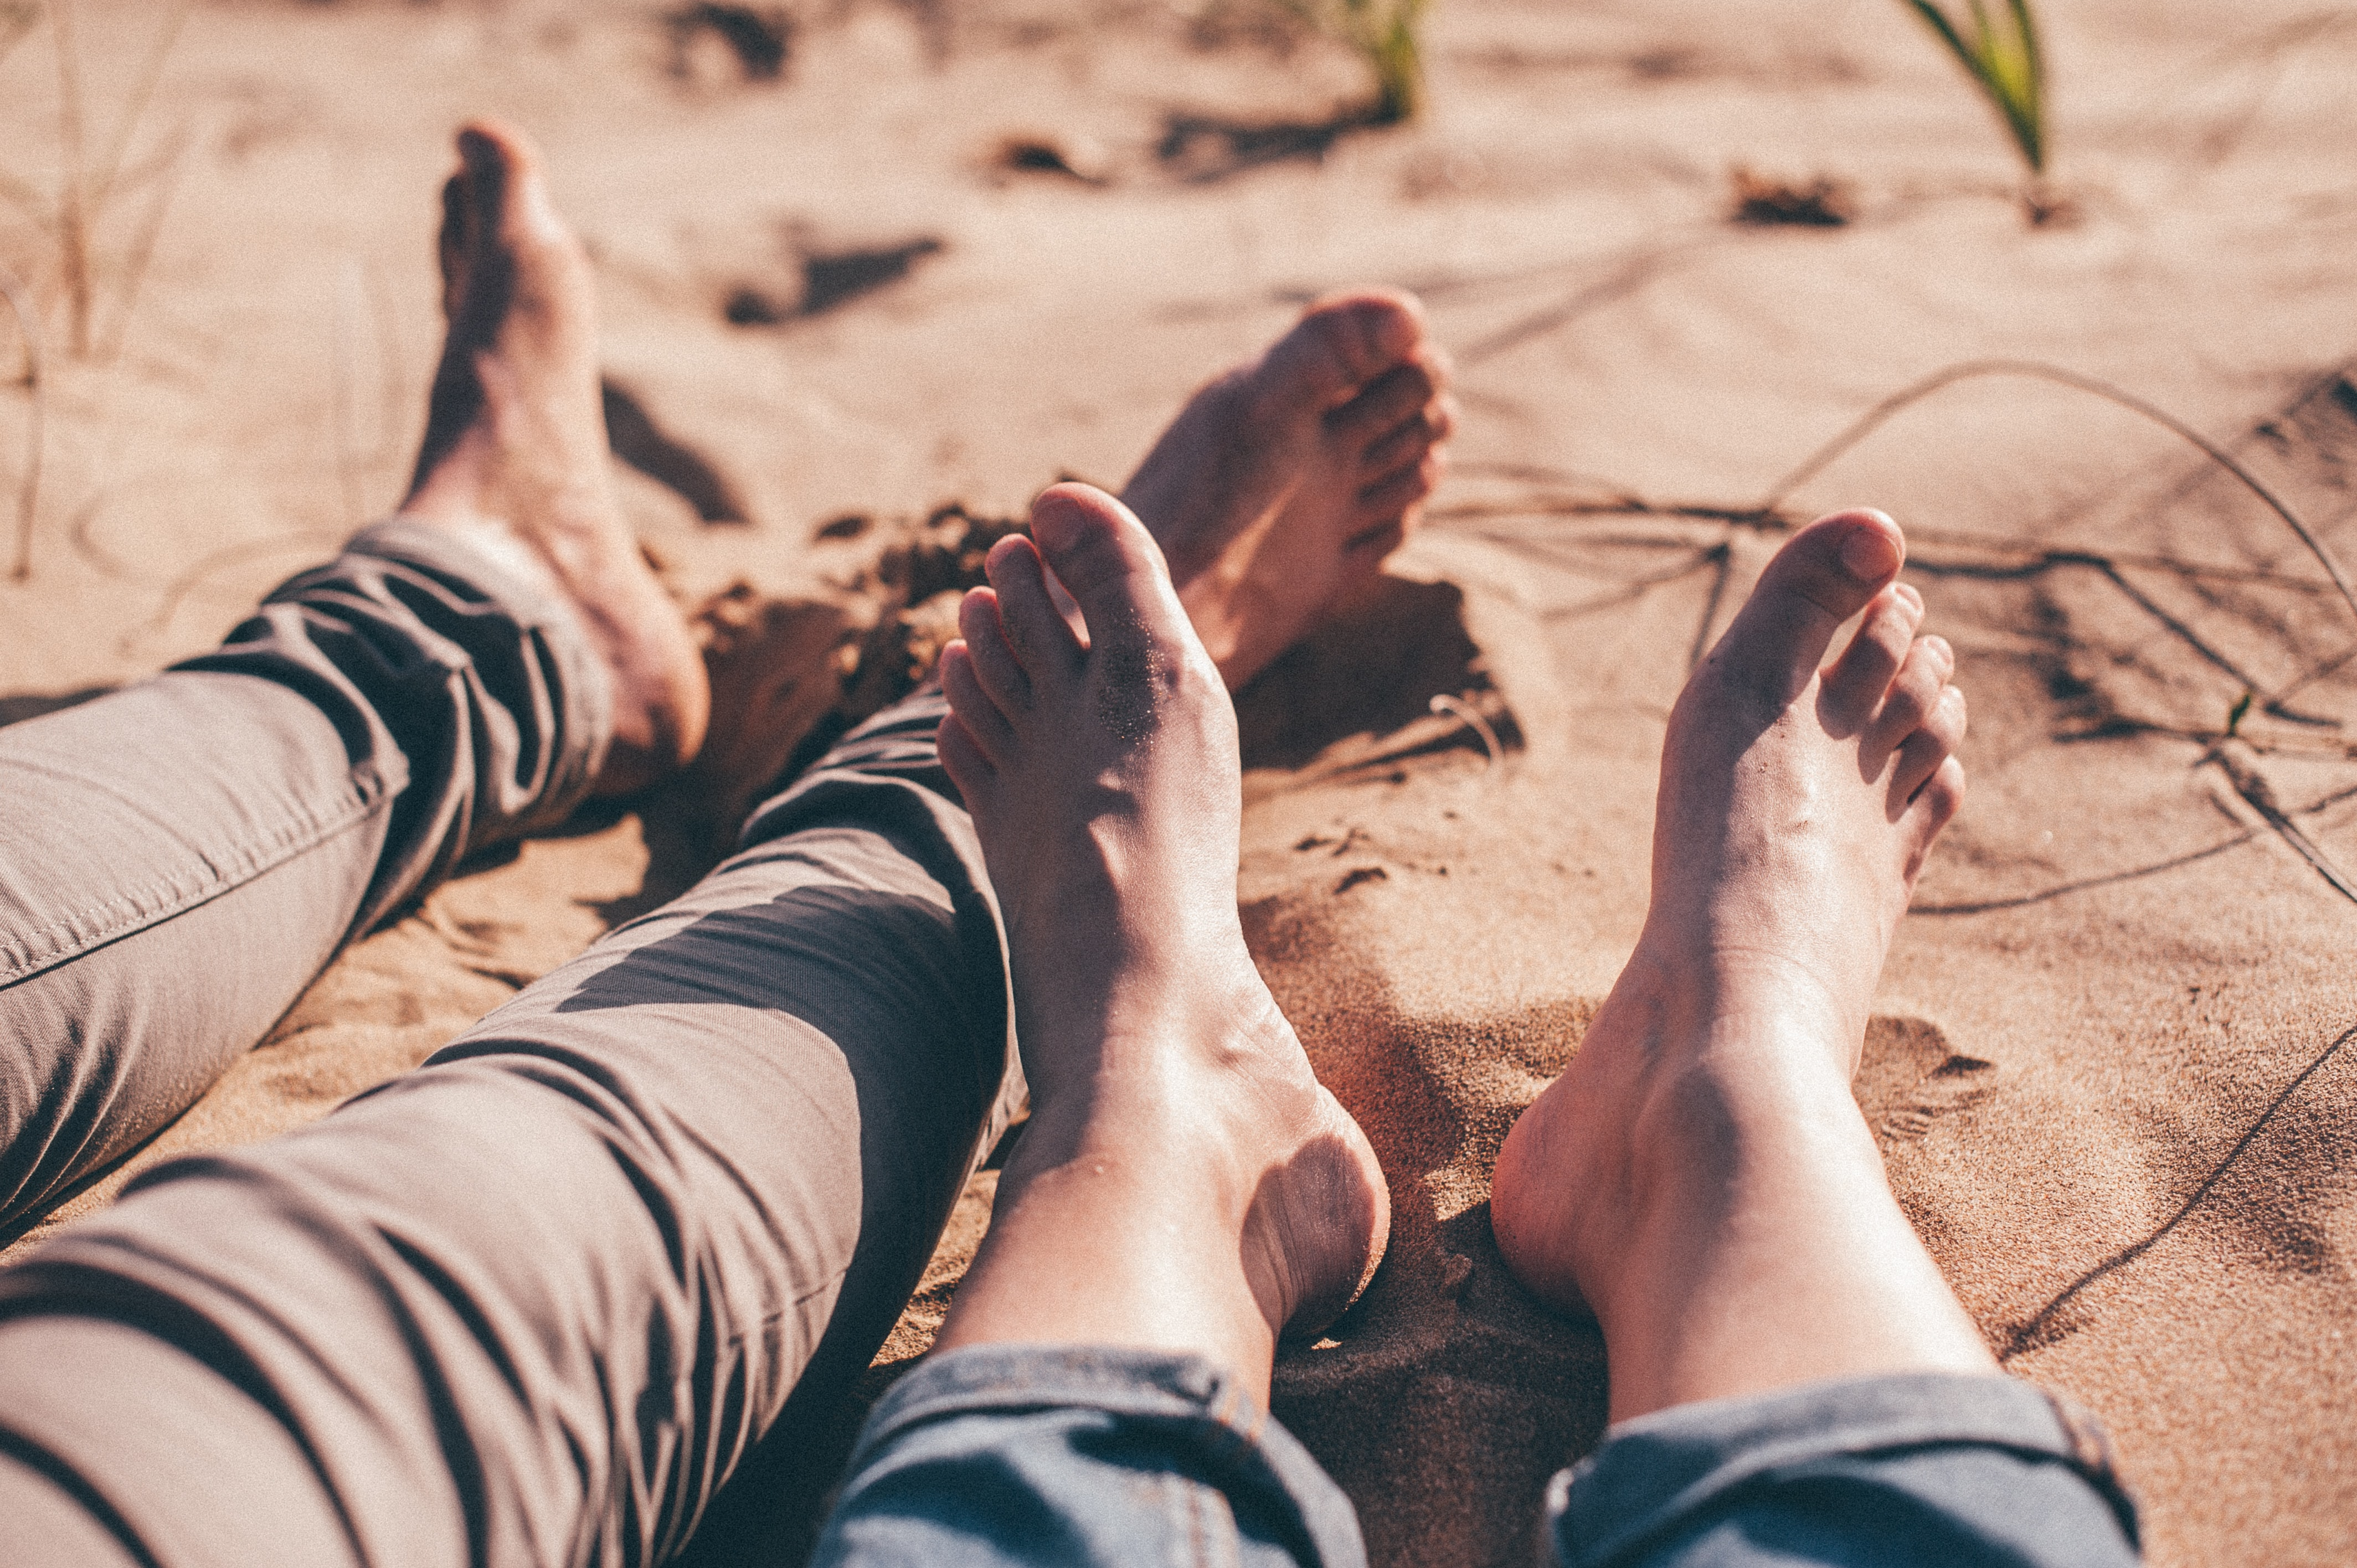 WHY SOMETIMES IT'S BETTER TO GET HELP WITH FOOT CARE